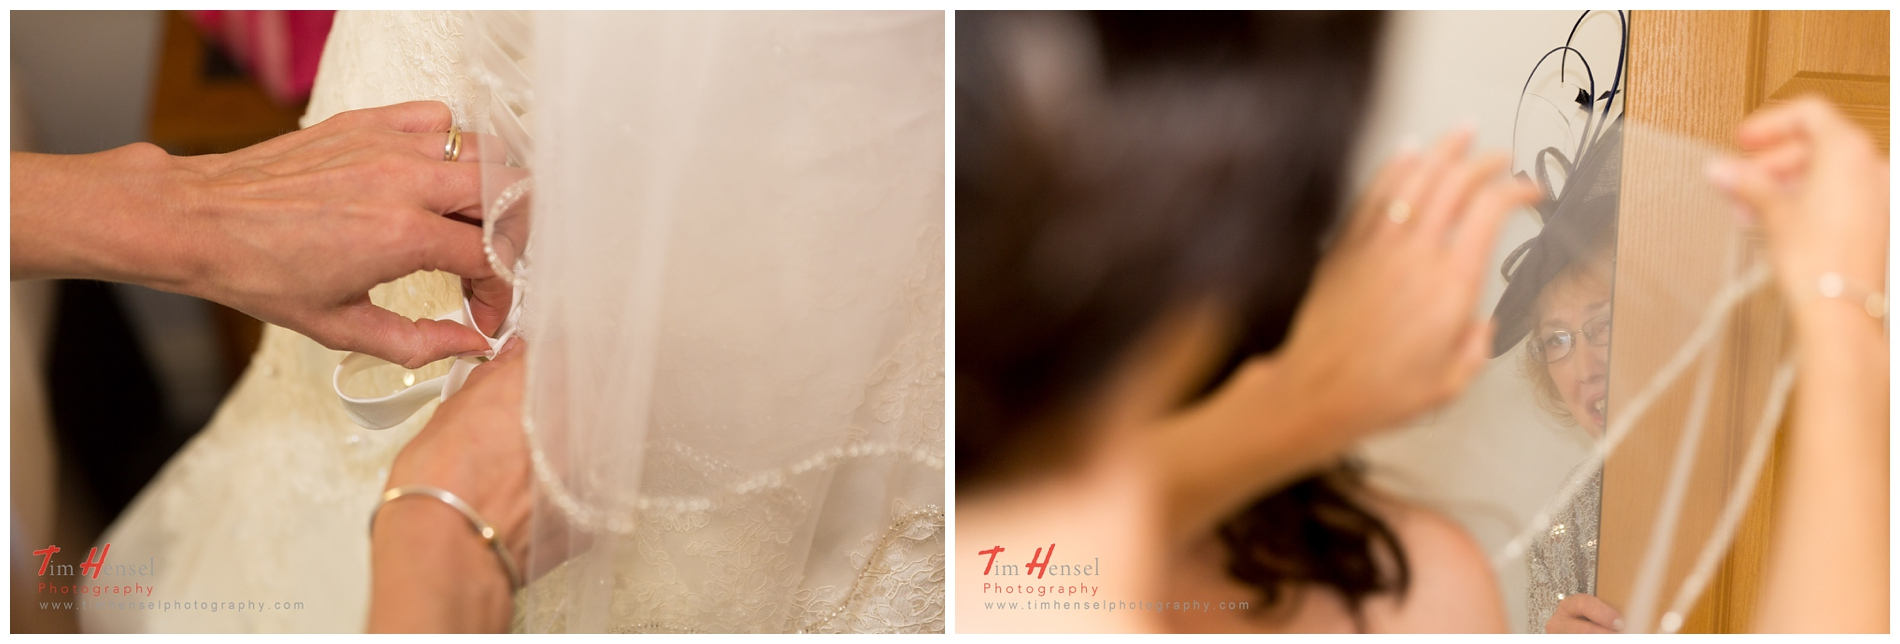 fixing of the veil - creative wedding photographs in derbyshire